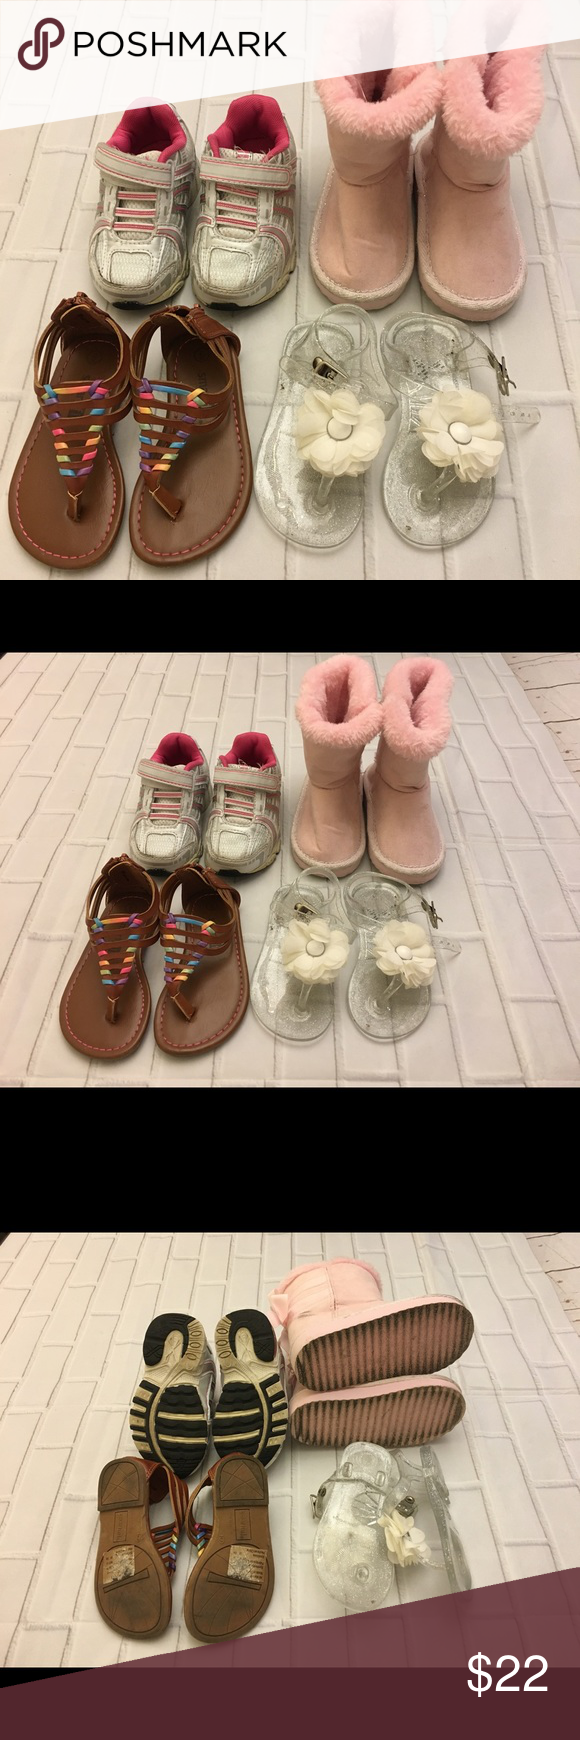 Lot Of 4 Pairs Of Girl S Size 6 Shoes Used Used Minimal Wear Of 4 Pairs Of Shoes For Toddler Girl S Size 6 One Pair Of Toddler Shoes Pink Boots Size Girls